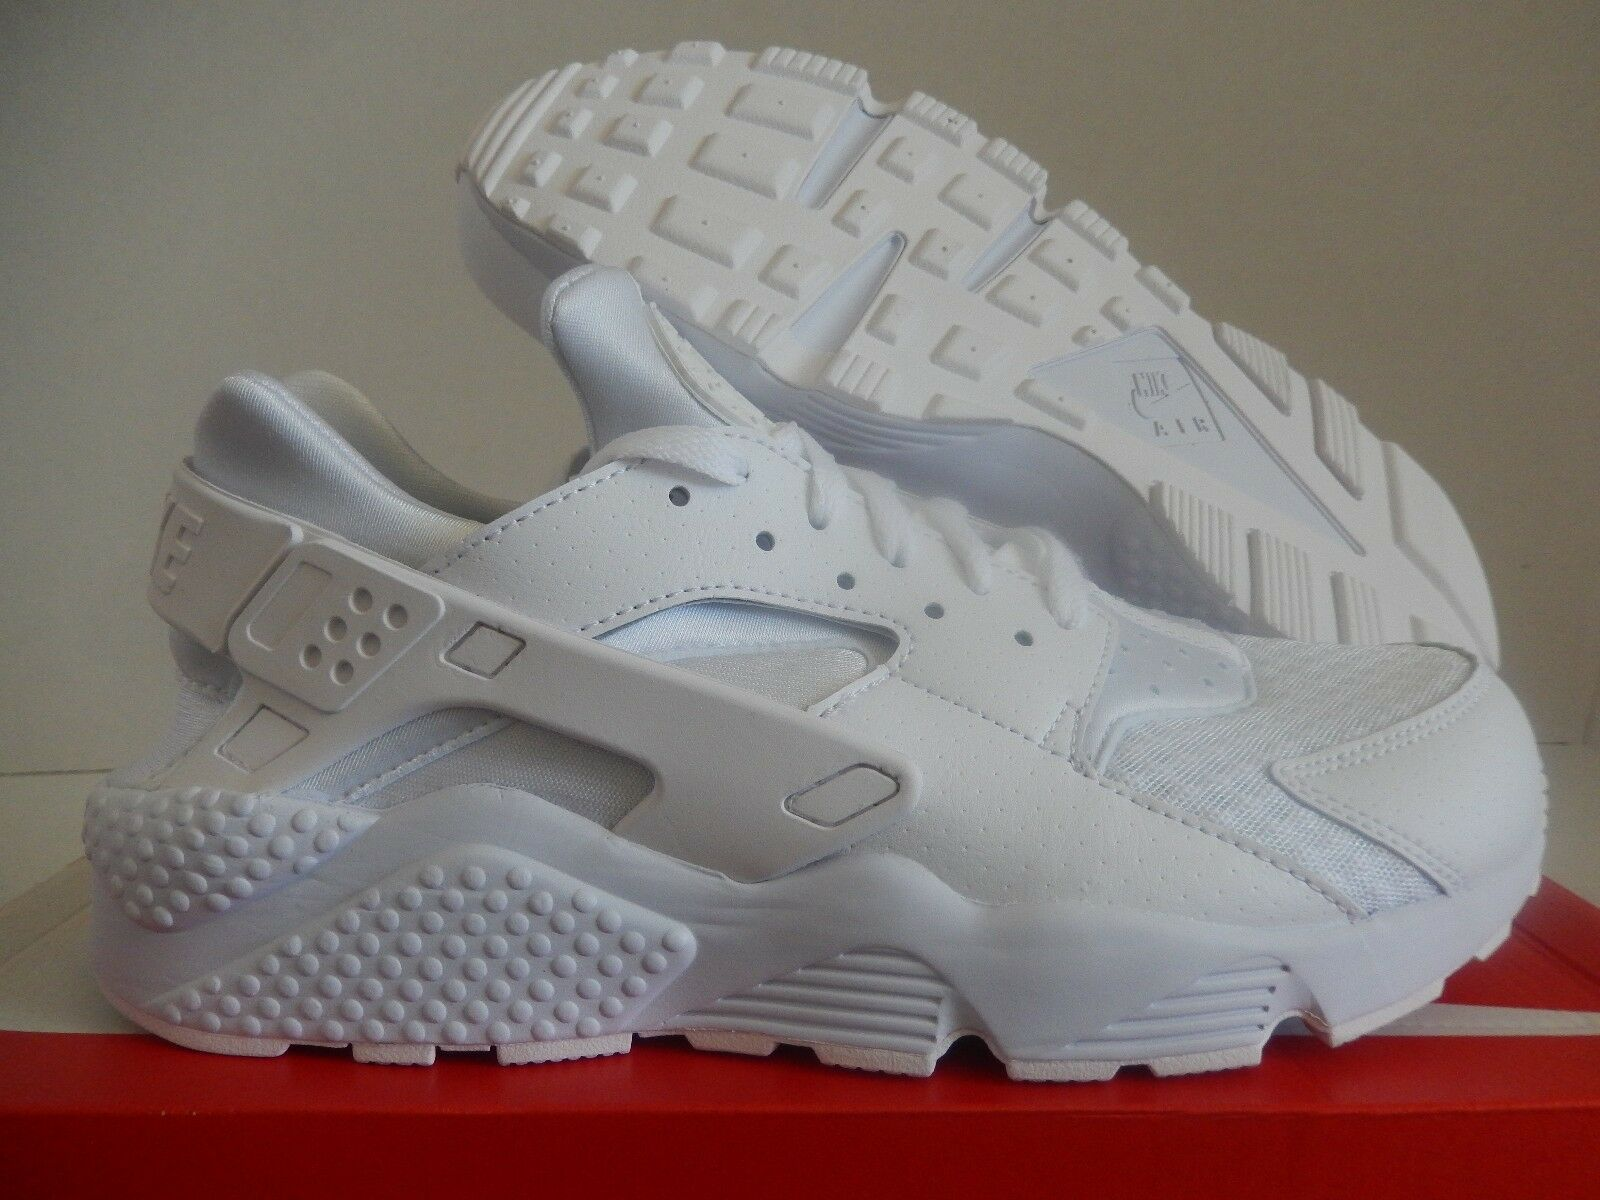 MENS NIKE AIR HUARACHE TRIPLE WHITE SZ 9.5 [318429-111]